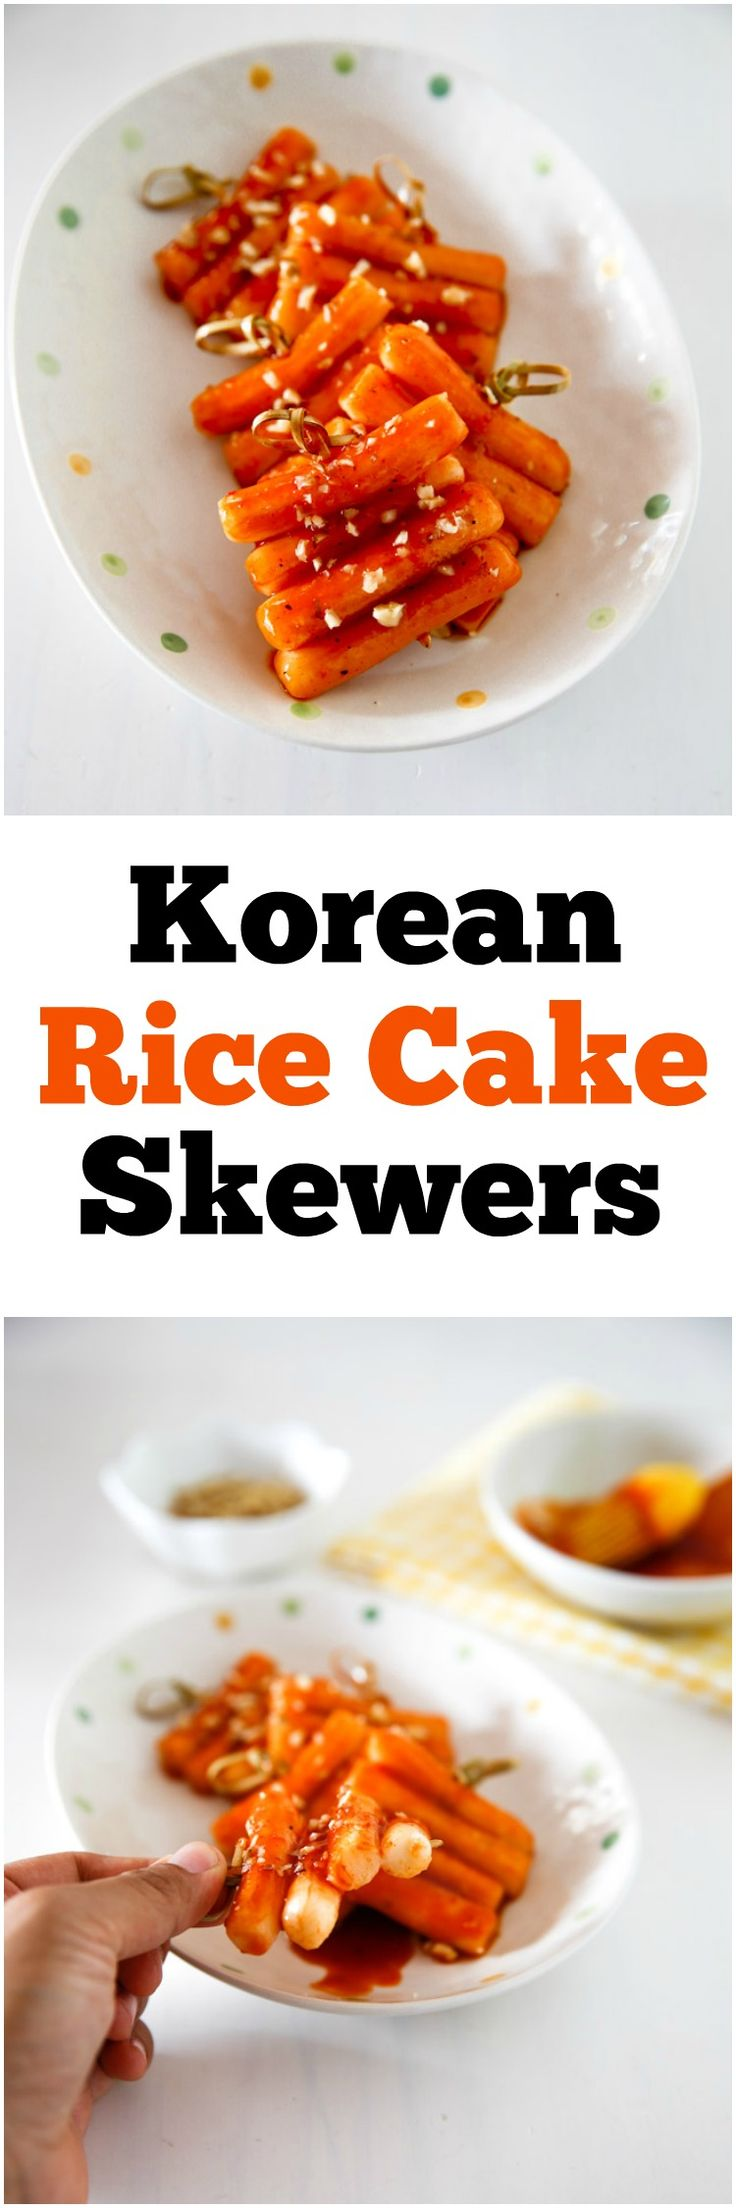 250 best korean food desserts and snacks images on pinterest how to make korean rice cake skewers tteeok kkochi at home its one forumfinder Images